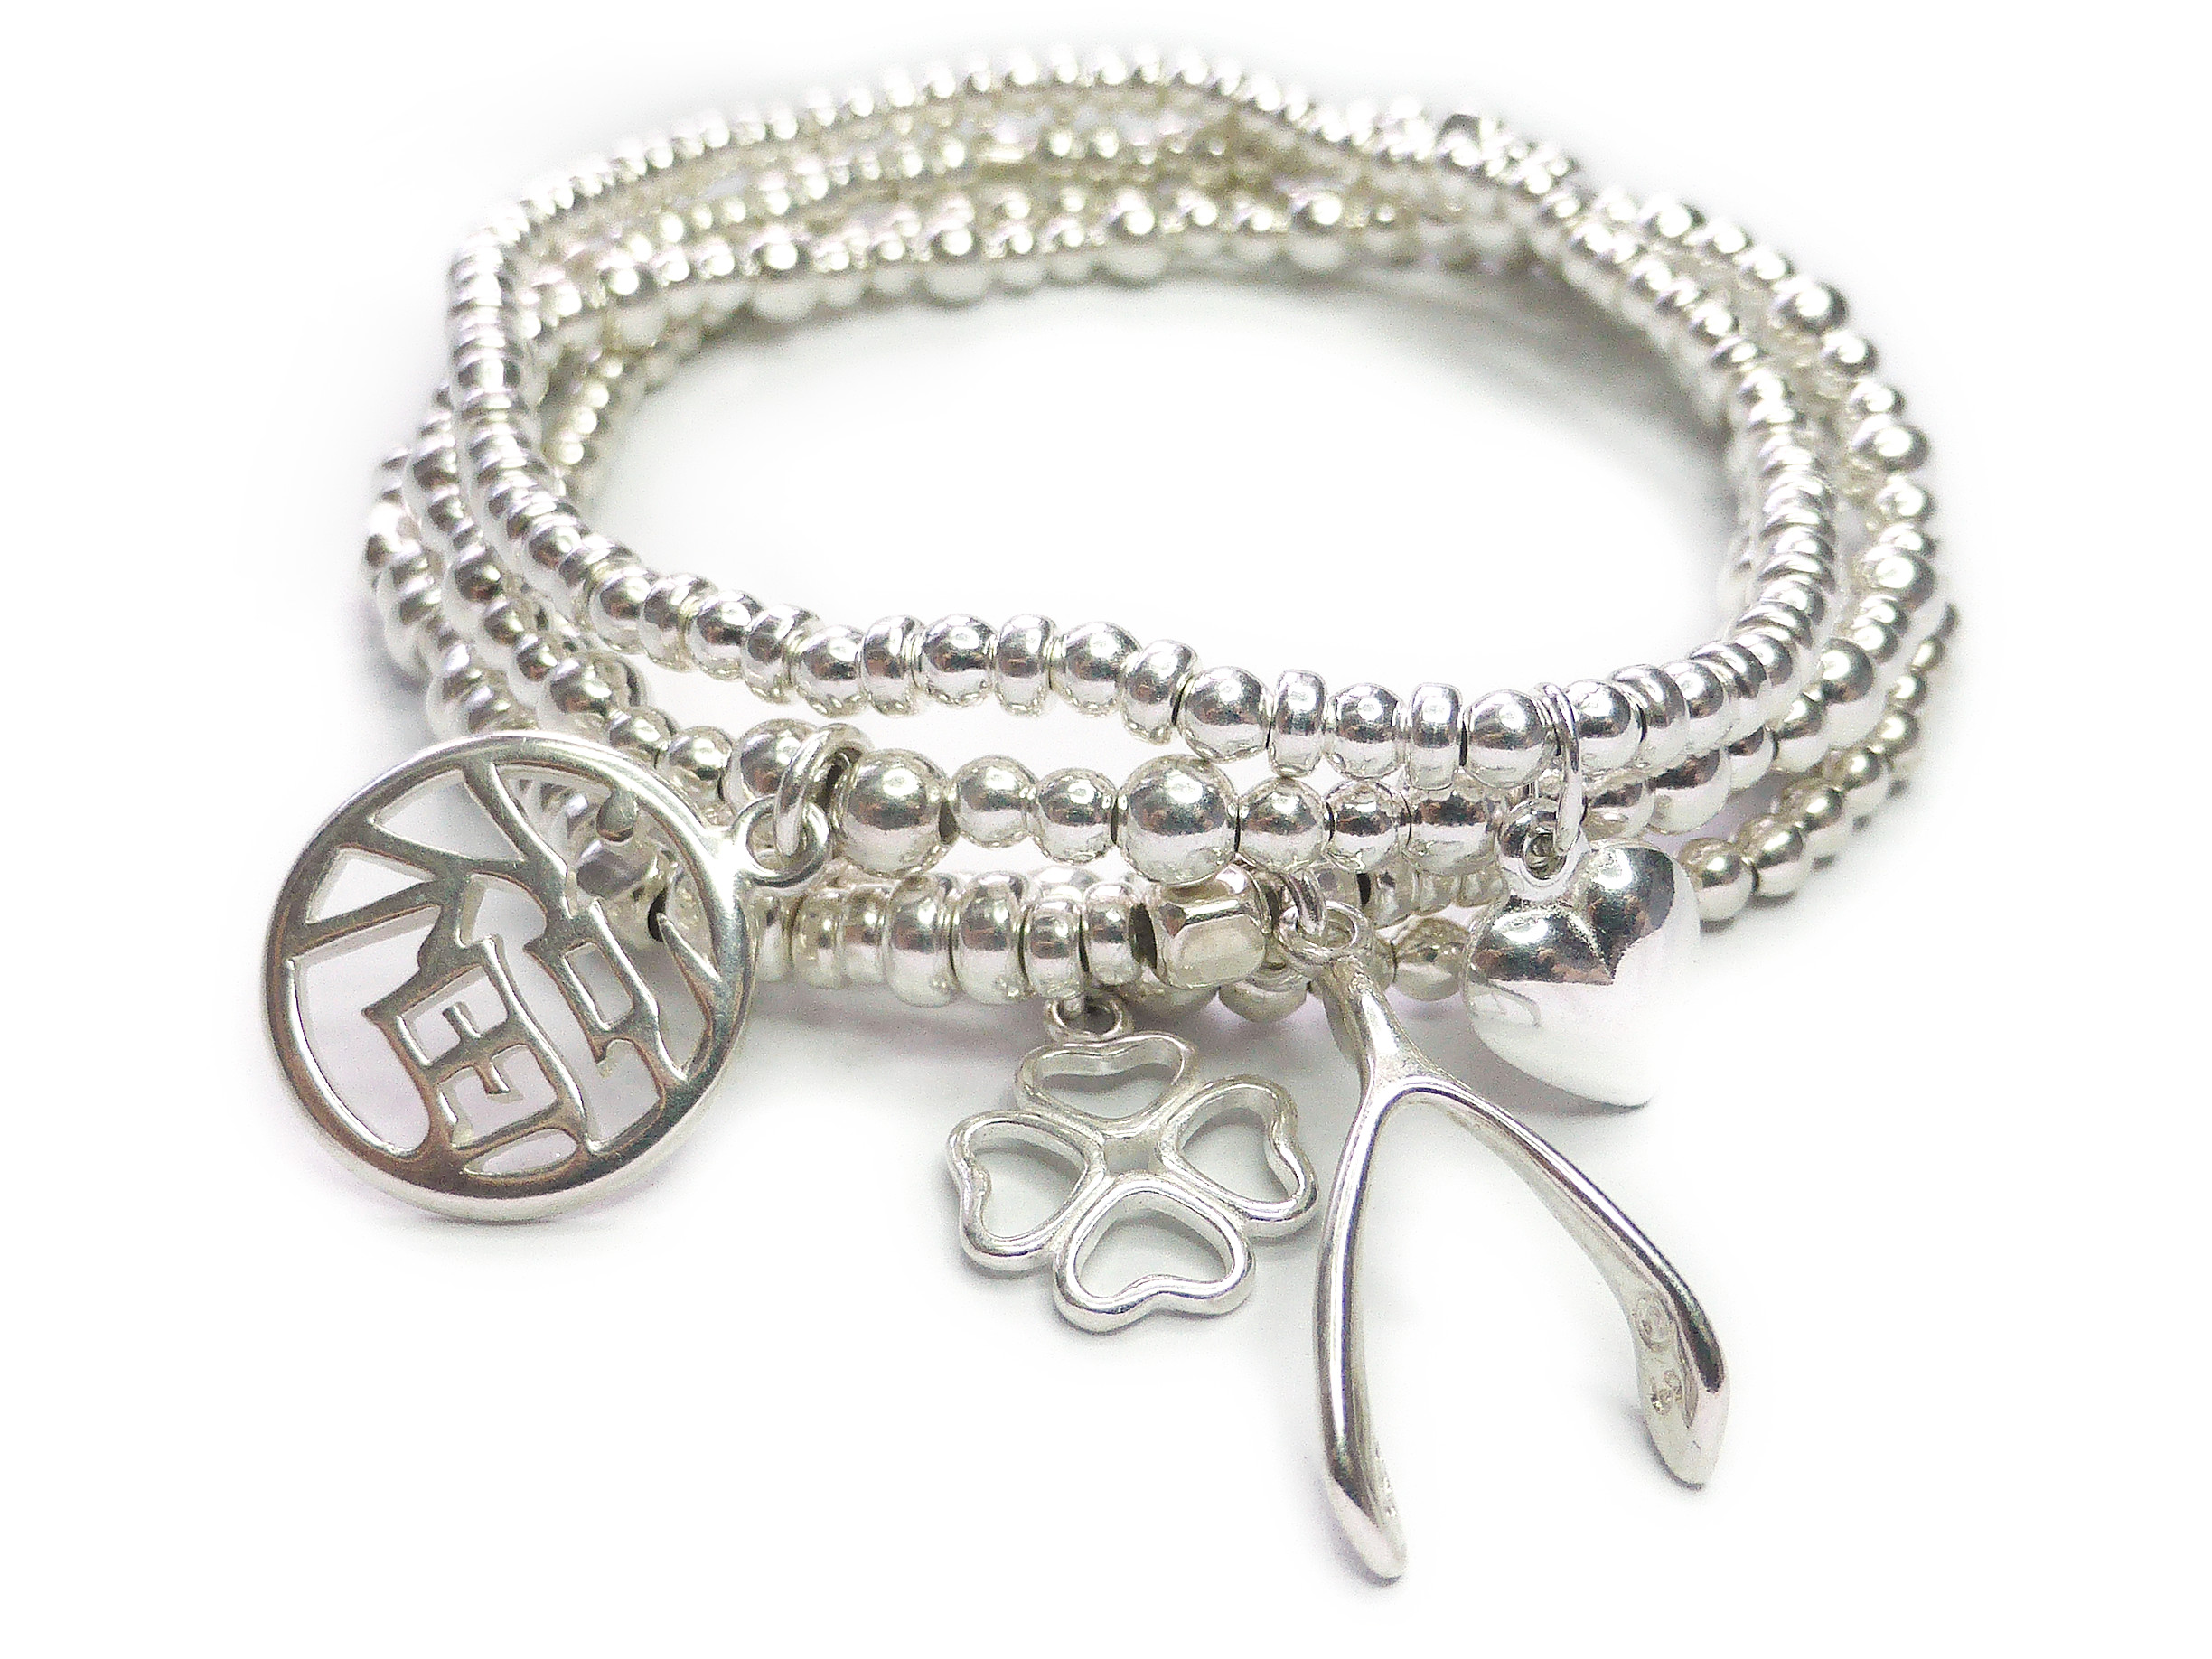 Love, Luck and Happiness Stack of Sterling Silver Ball Bracelets by Jacy & Jools